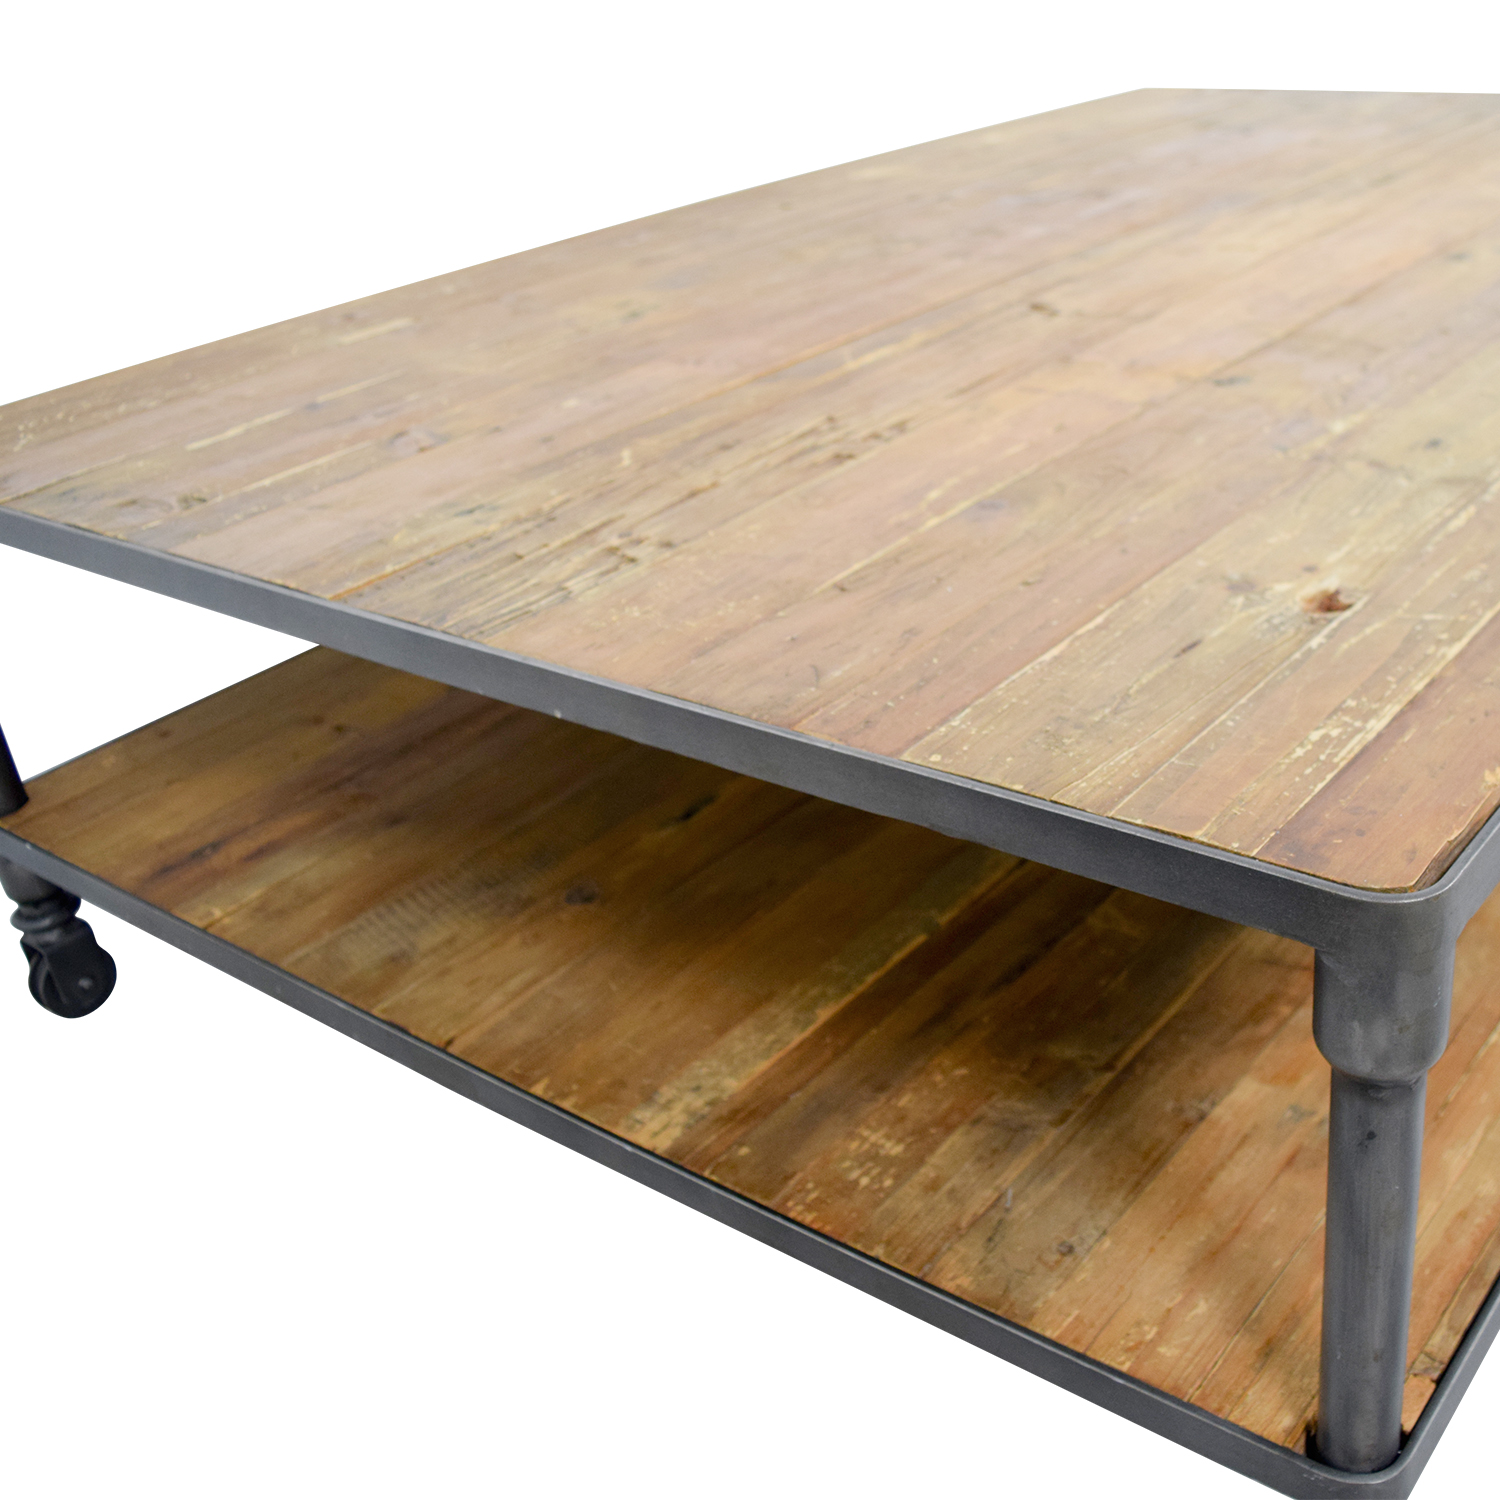 68 off abc carpet home abc carpet home reclaimed wood coffee table tables